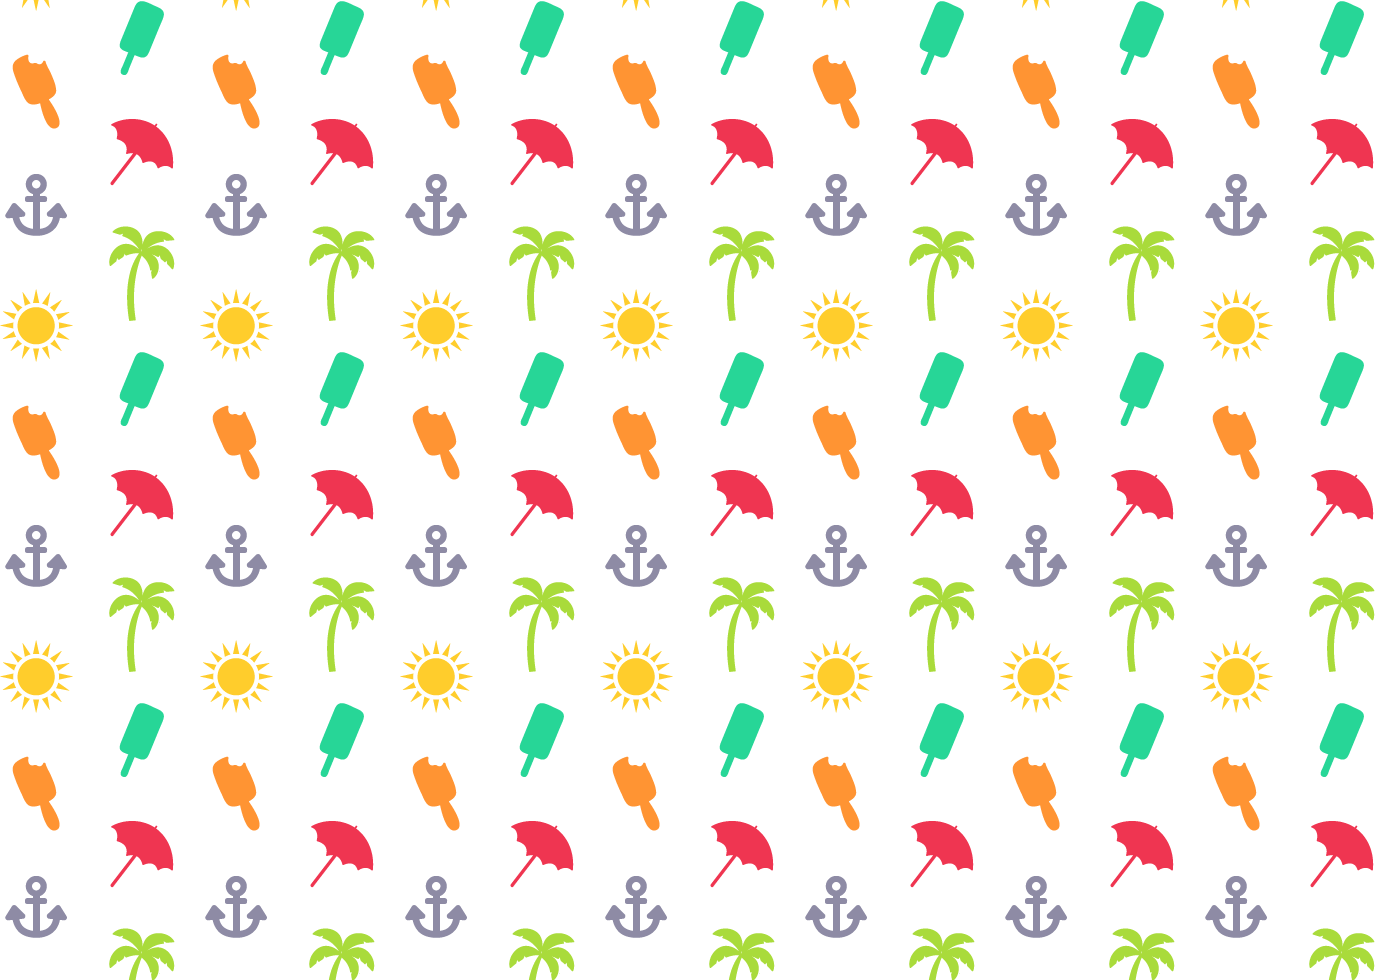 Free Summer Pattern Vector  Download Free Vector Art, Stock Graphics & Images